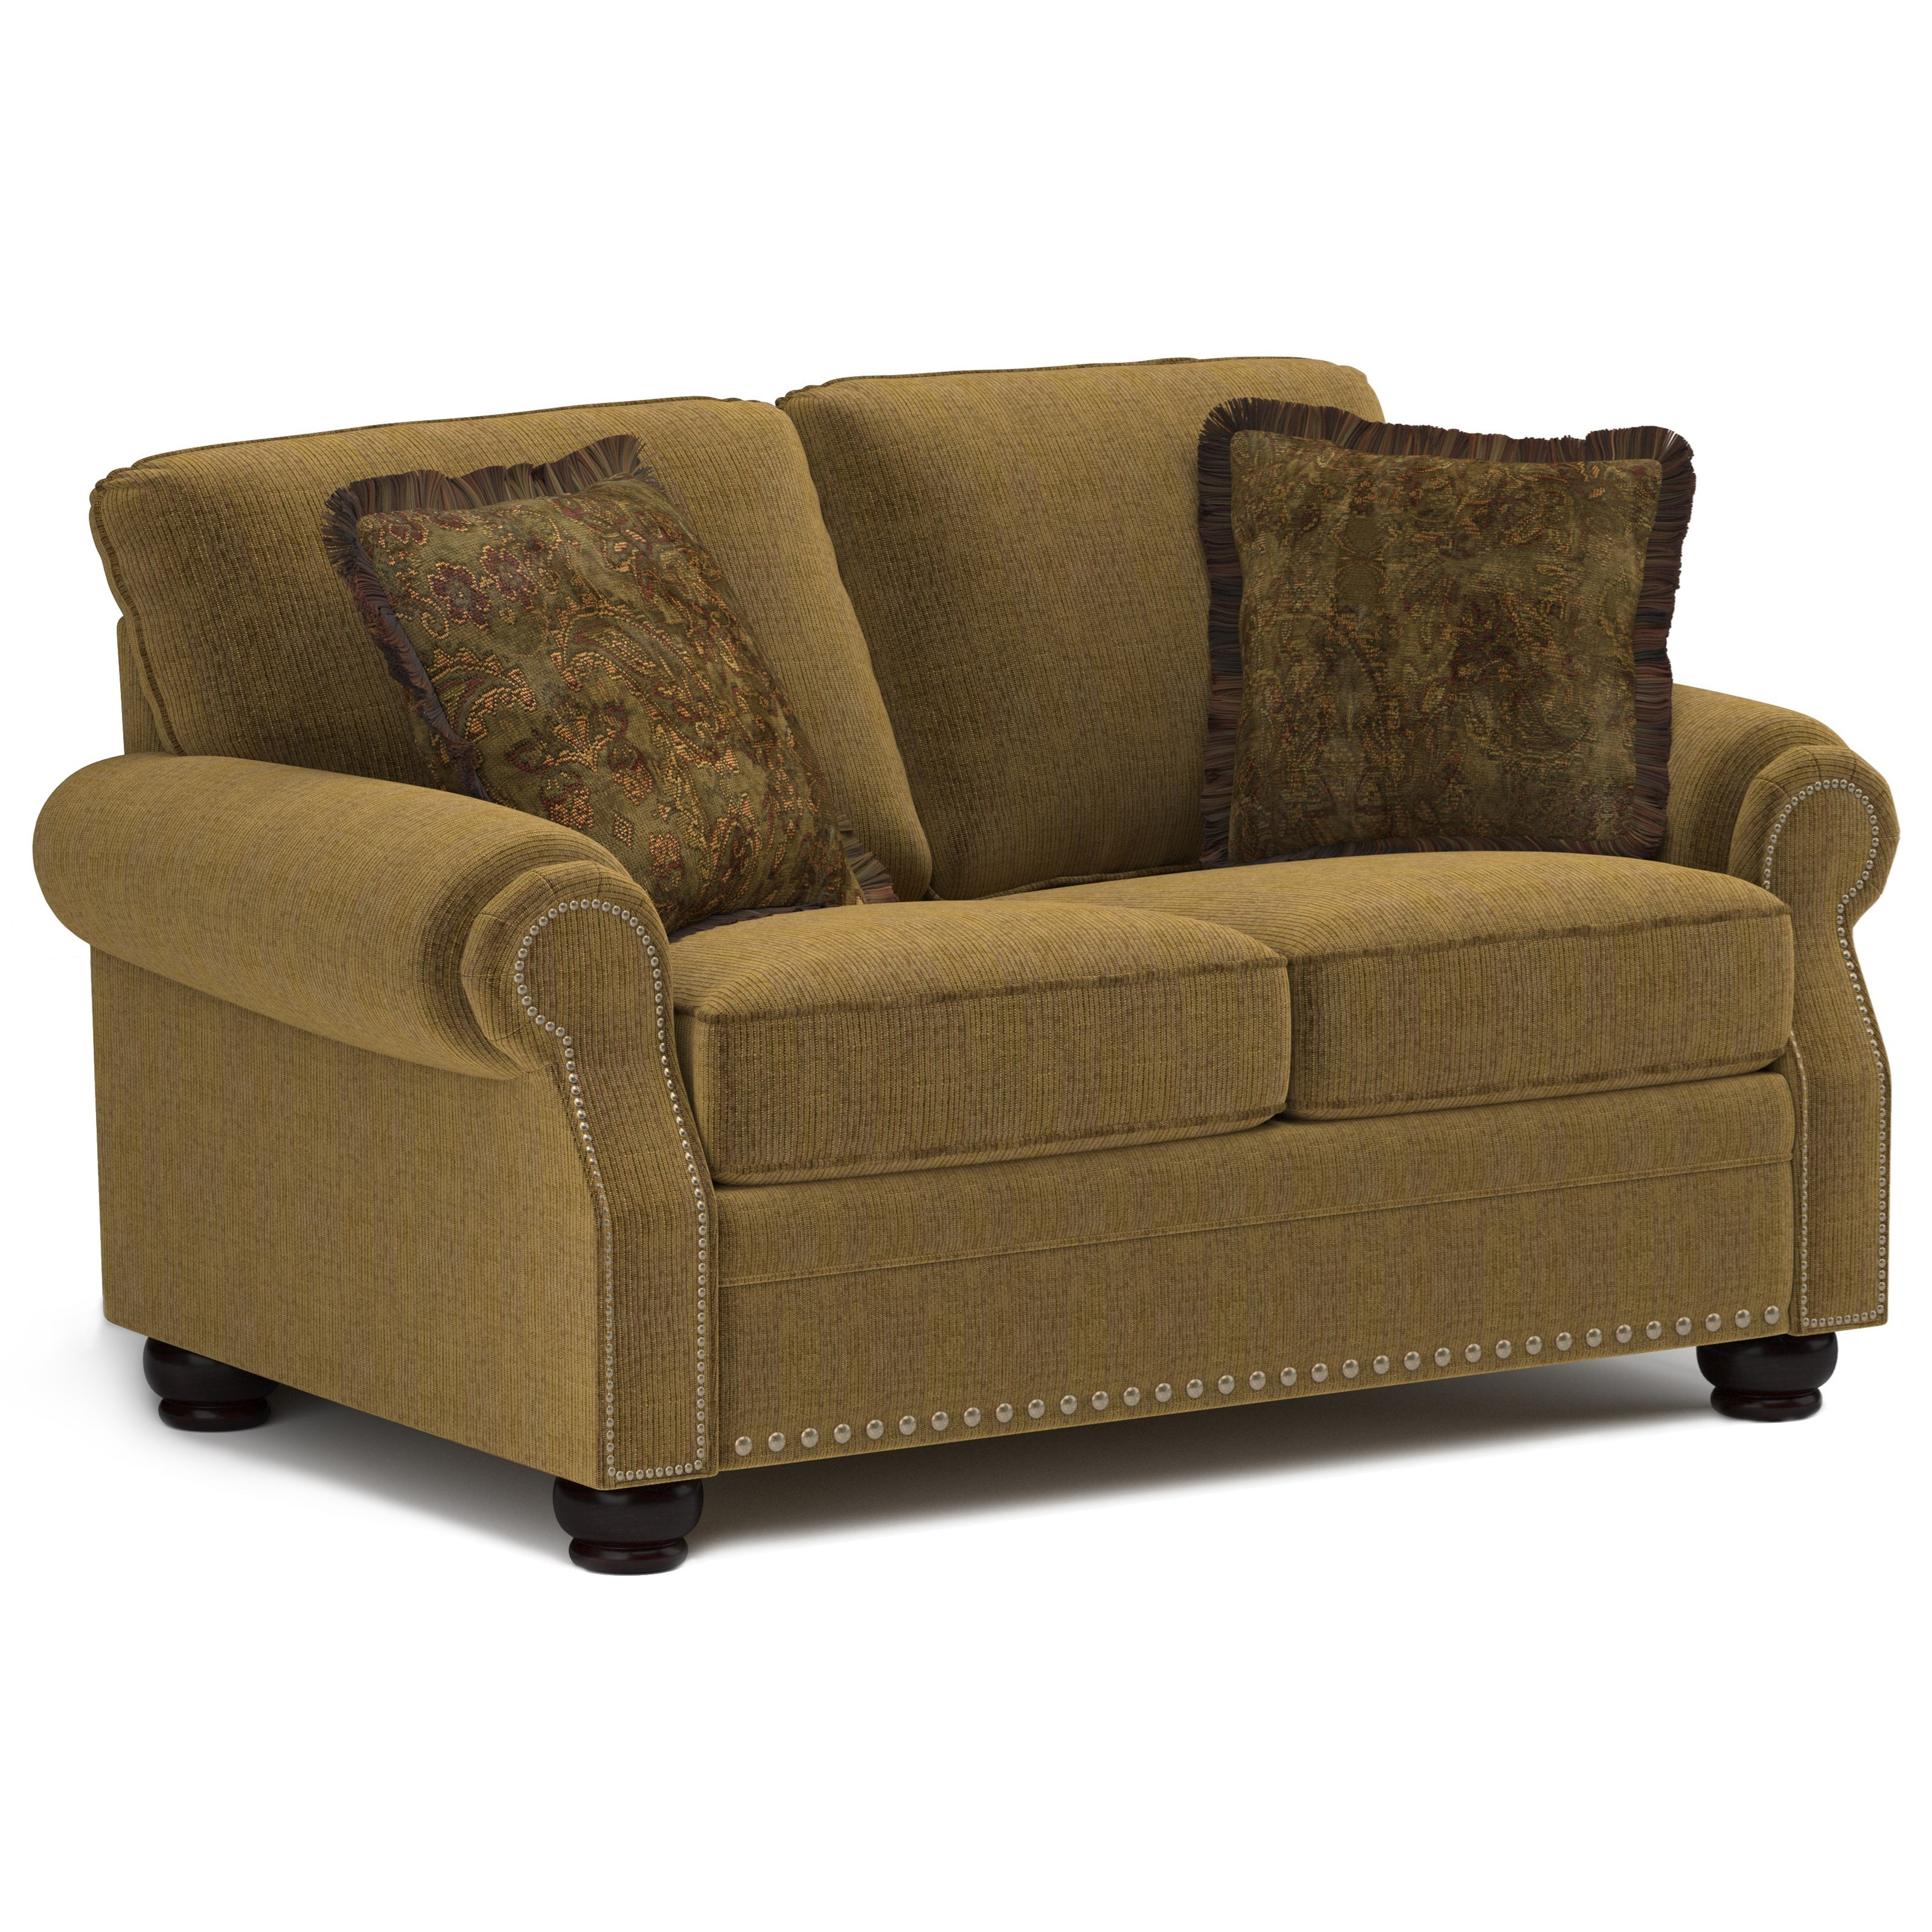 191 Loveseat by Sunset Home at Walker's Furniture